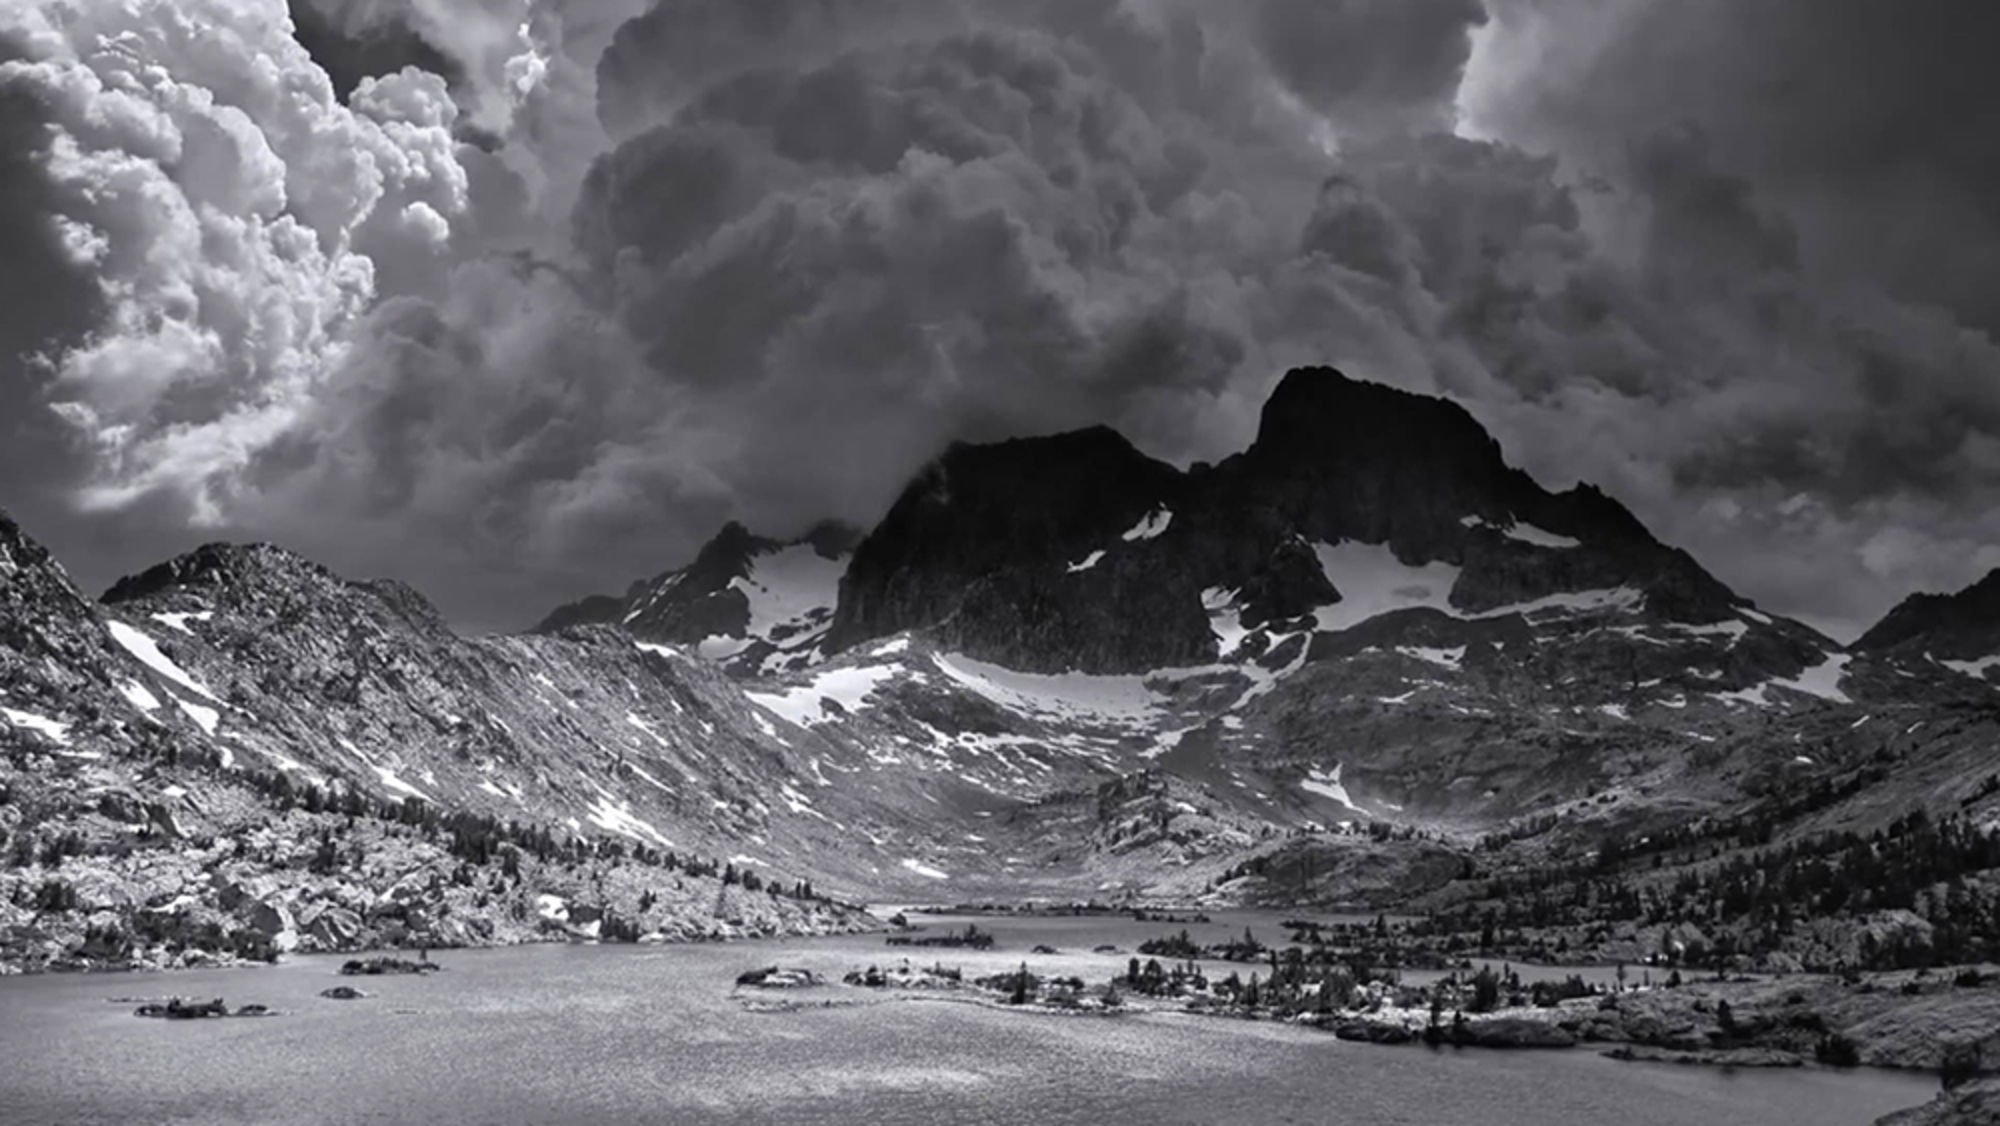 what can ansel adams s enduring photography teach us in the age of  what can ansel adams s enduring photography teach us in the age of instagram videos